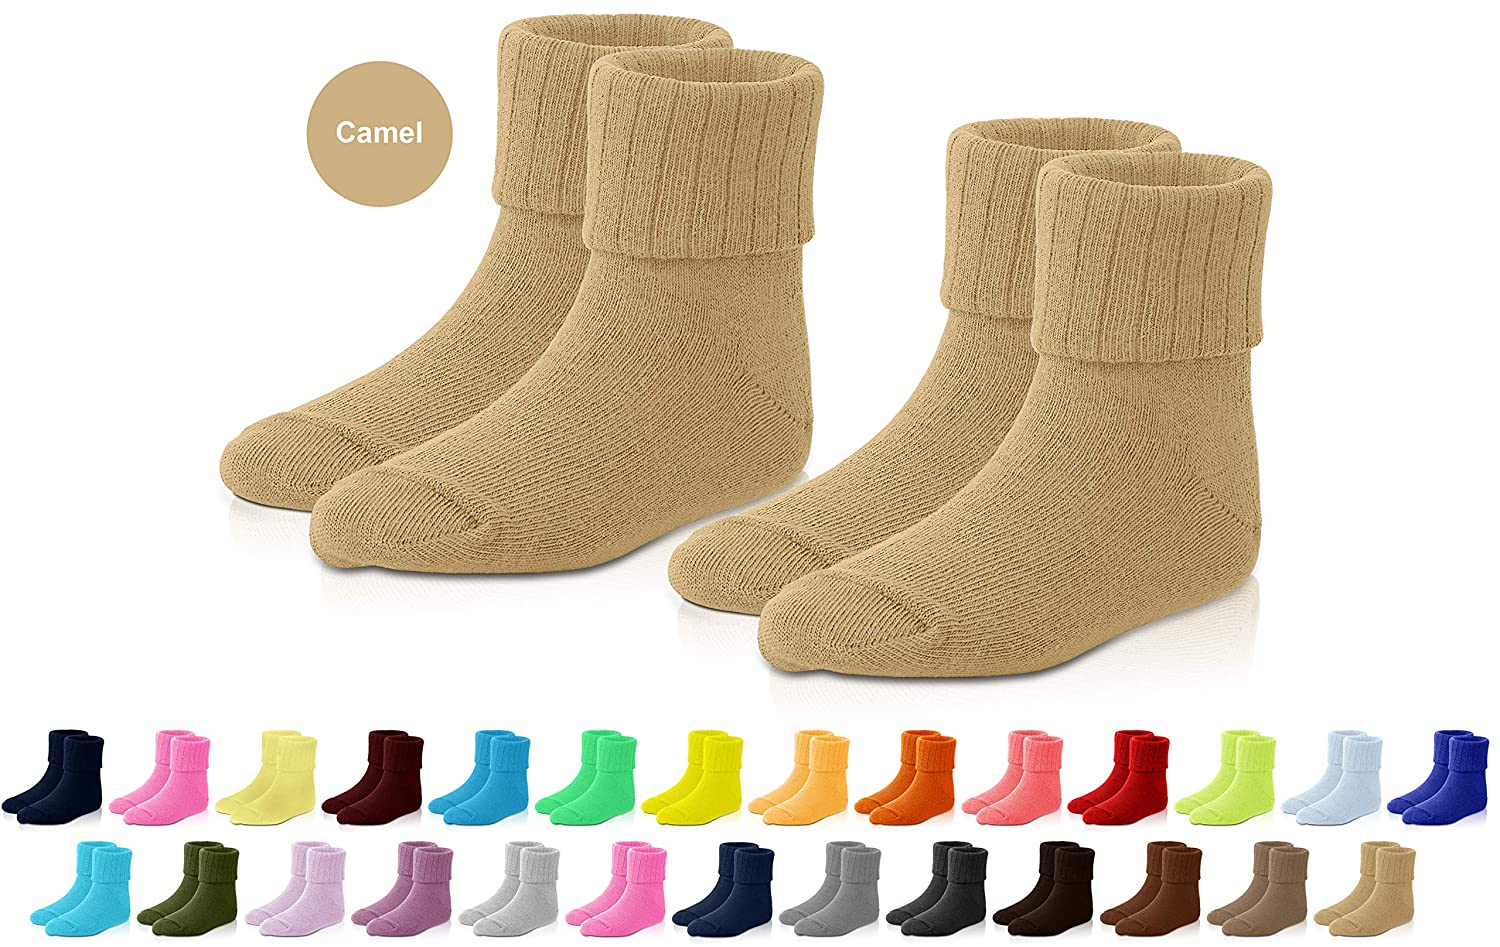 Newborn 35 Colors Toddler and Child JRP Kids and Baby Socks 2 Pack Soft Cotton Crew Length for Boys and Girls